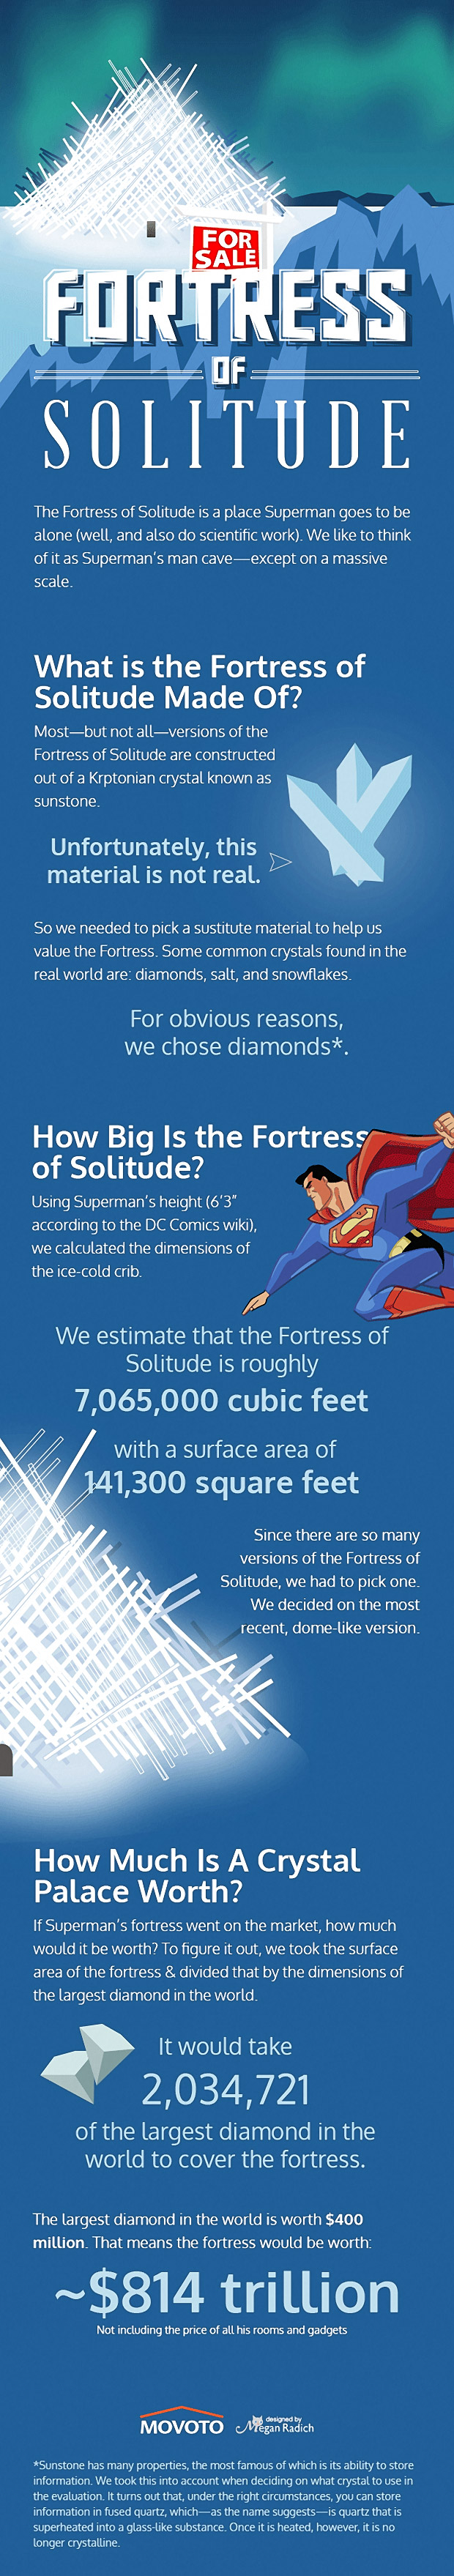 Superman's Fortess of Solitude: It's a Little Pricey